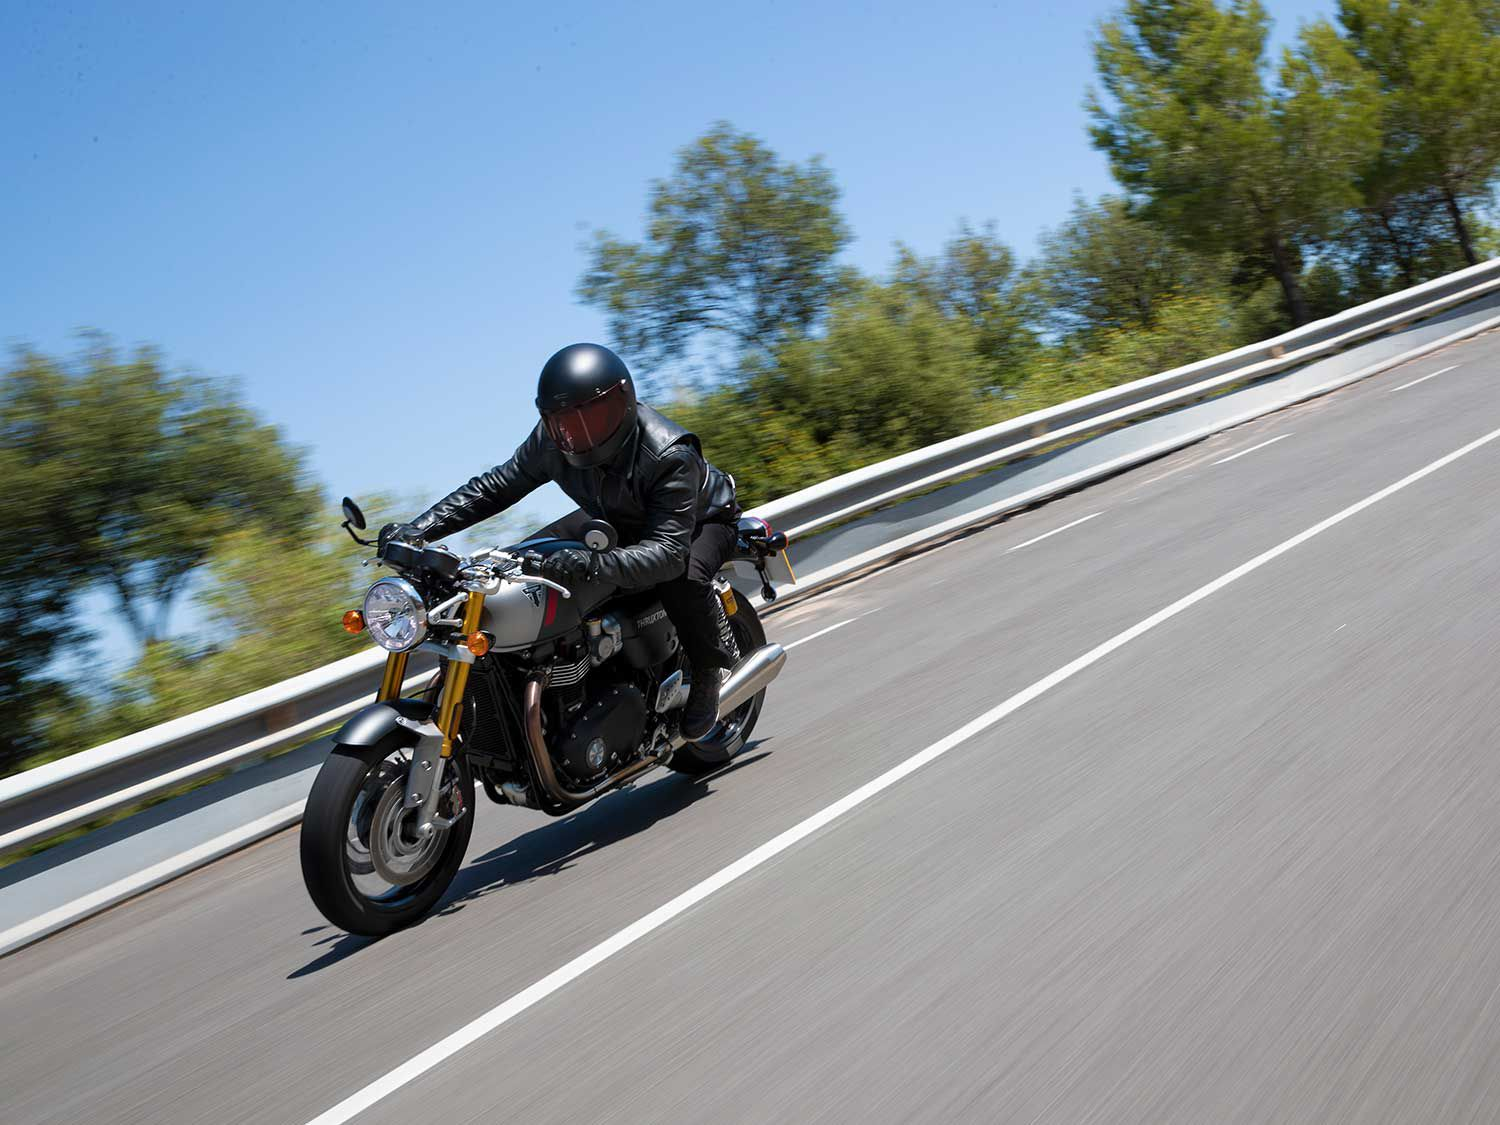 Less weight and higher-spec components improve handling of the Thruxton RS.